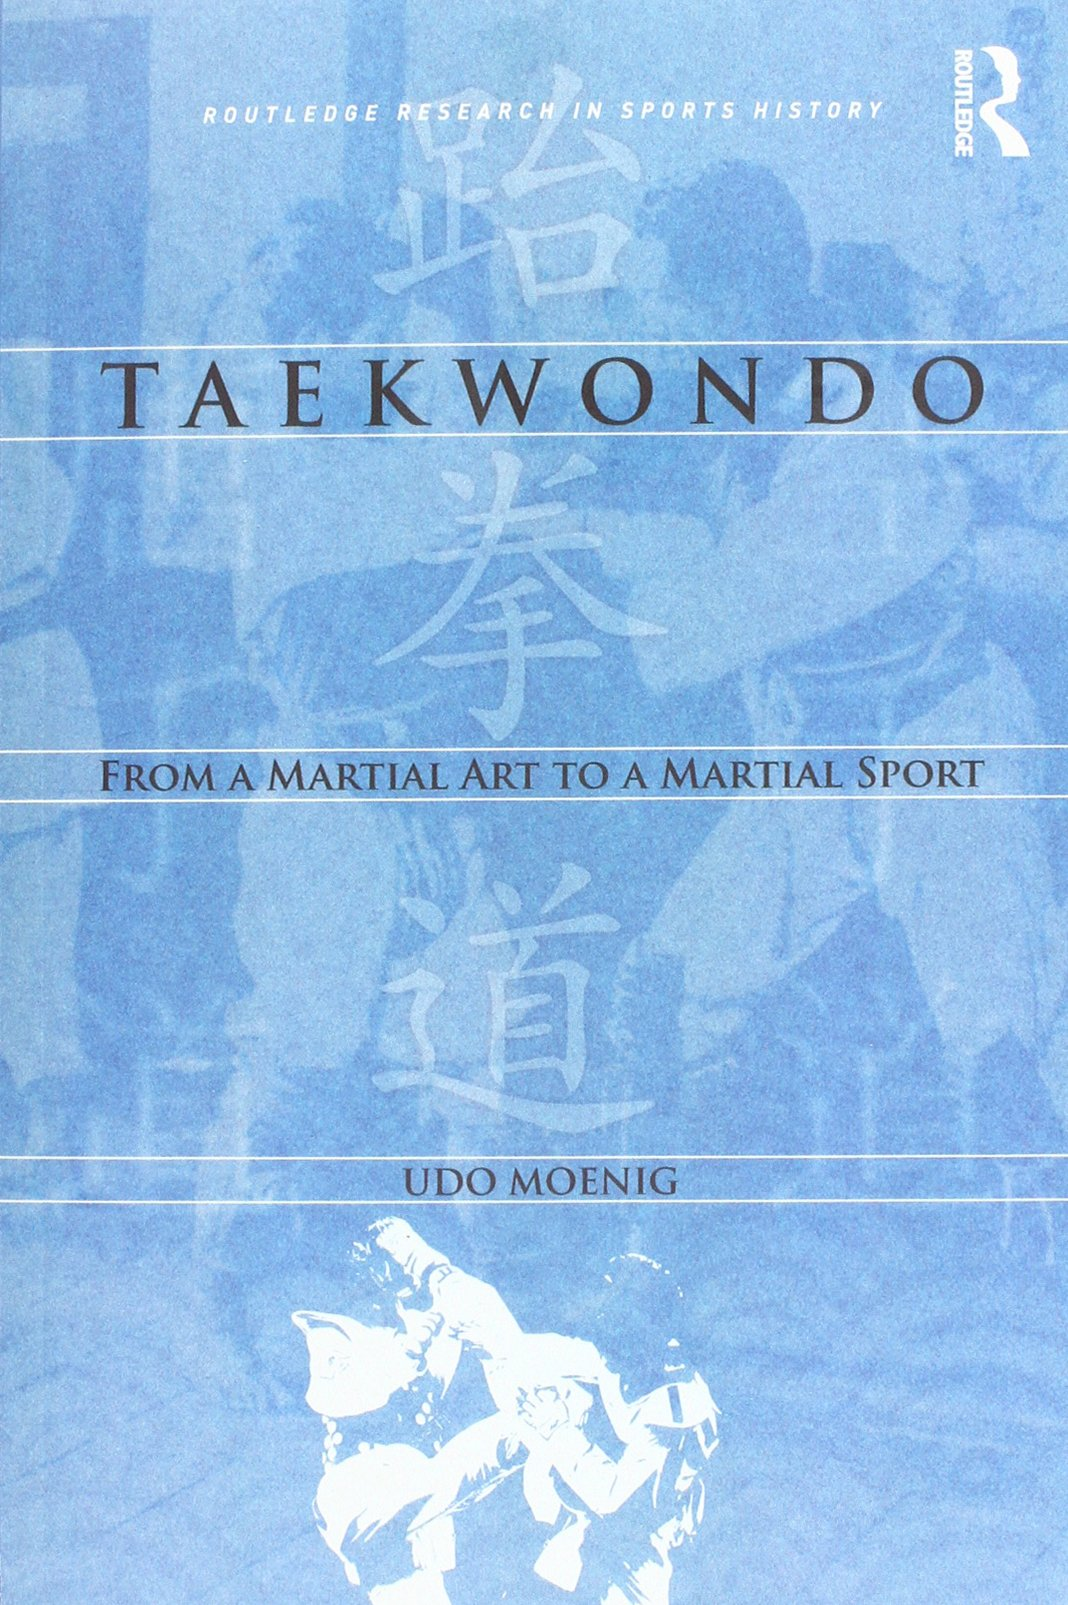 Taekwondo: From a Martial Art to a Martial Sport (Routledge Reseatch in Sports History)